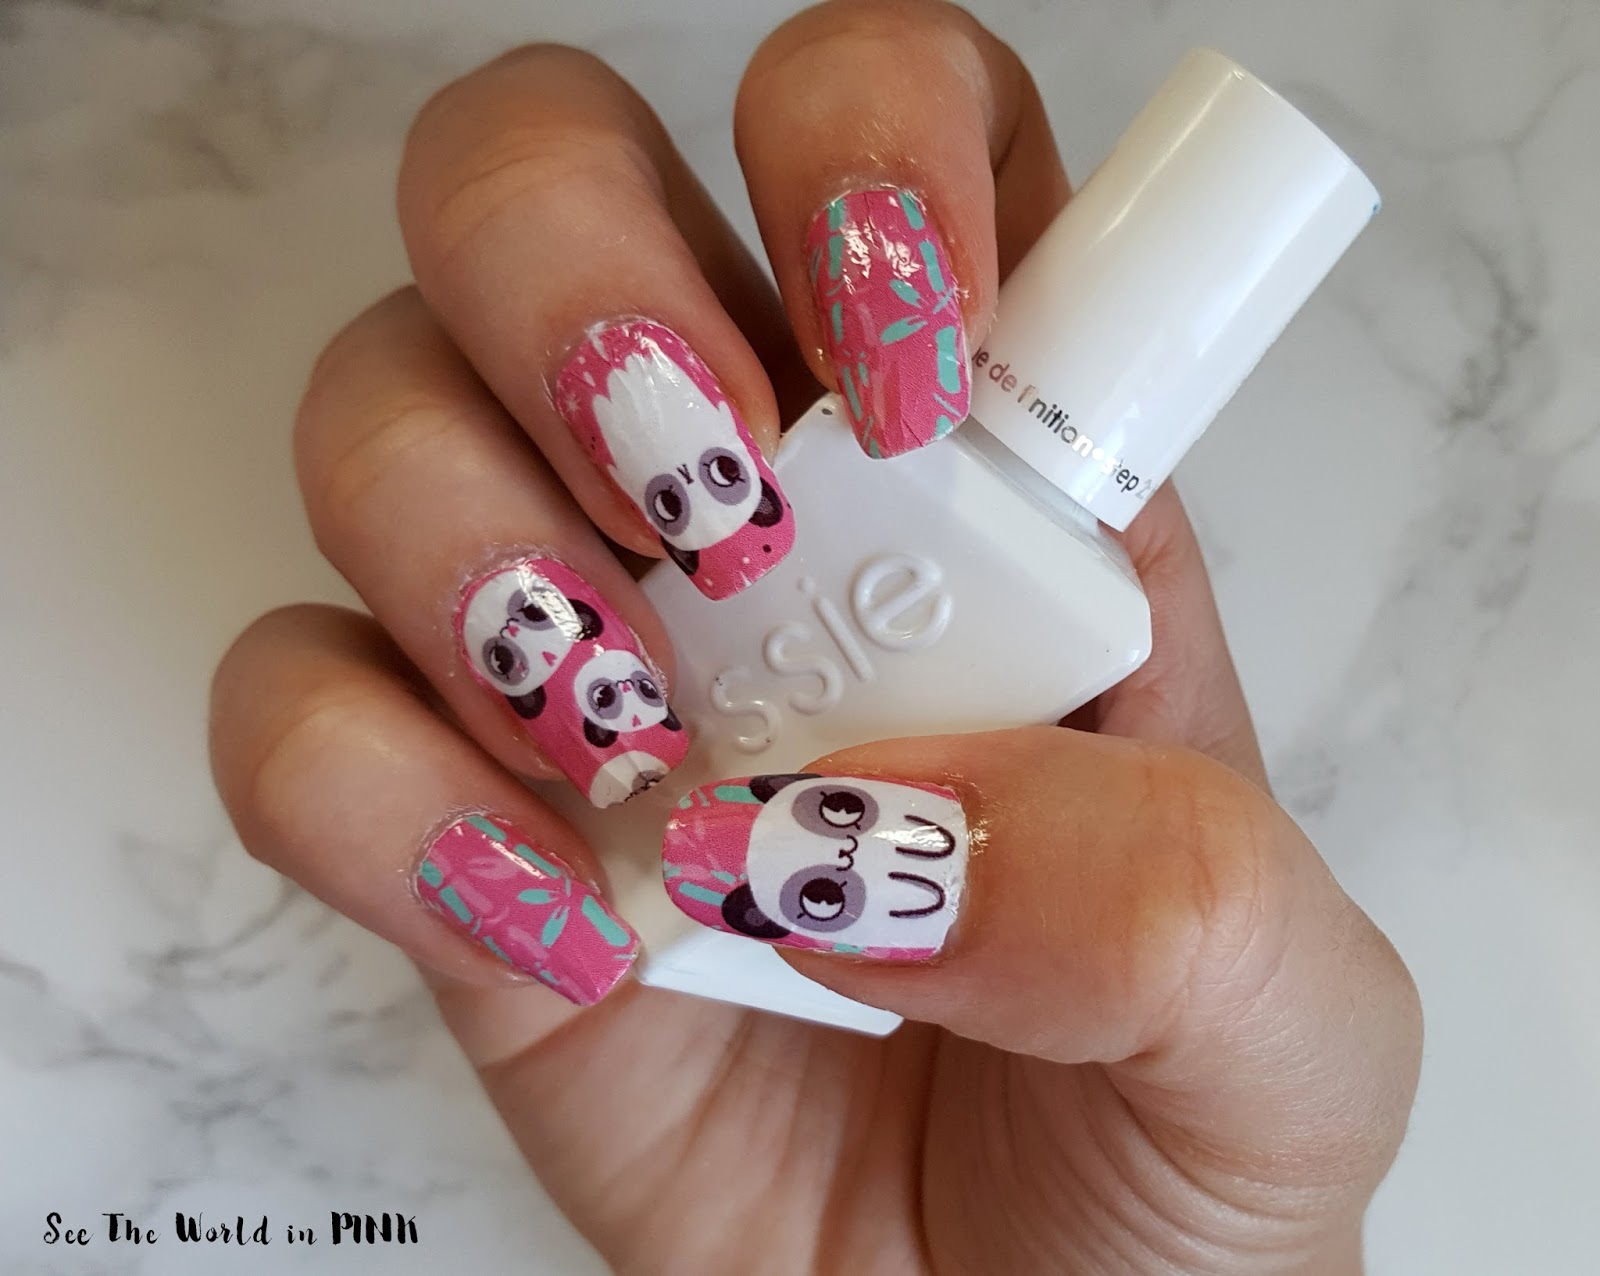 Manicure Monday - PearlPlanet Panda Pop Water Nail Decals